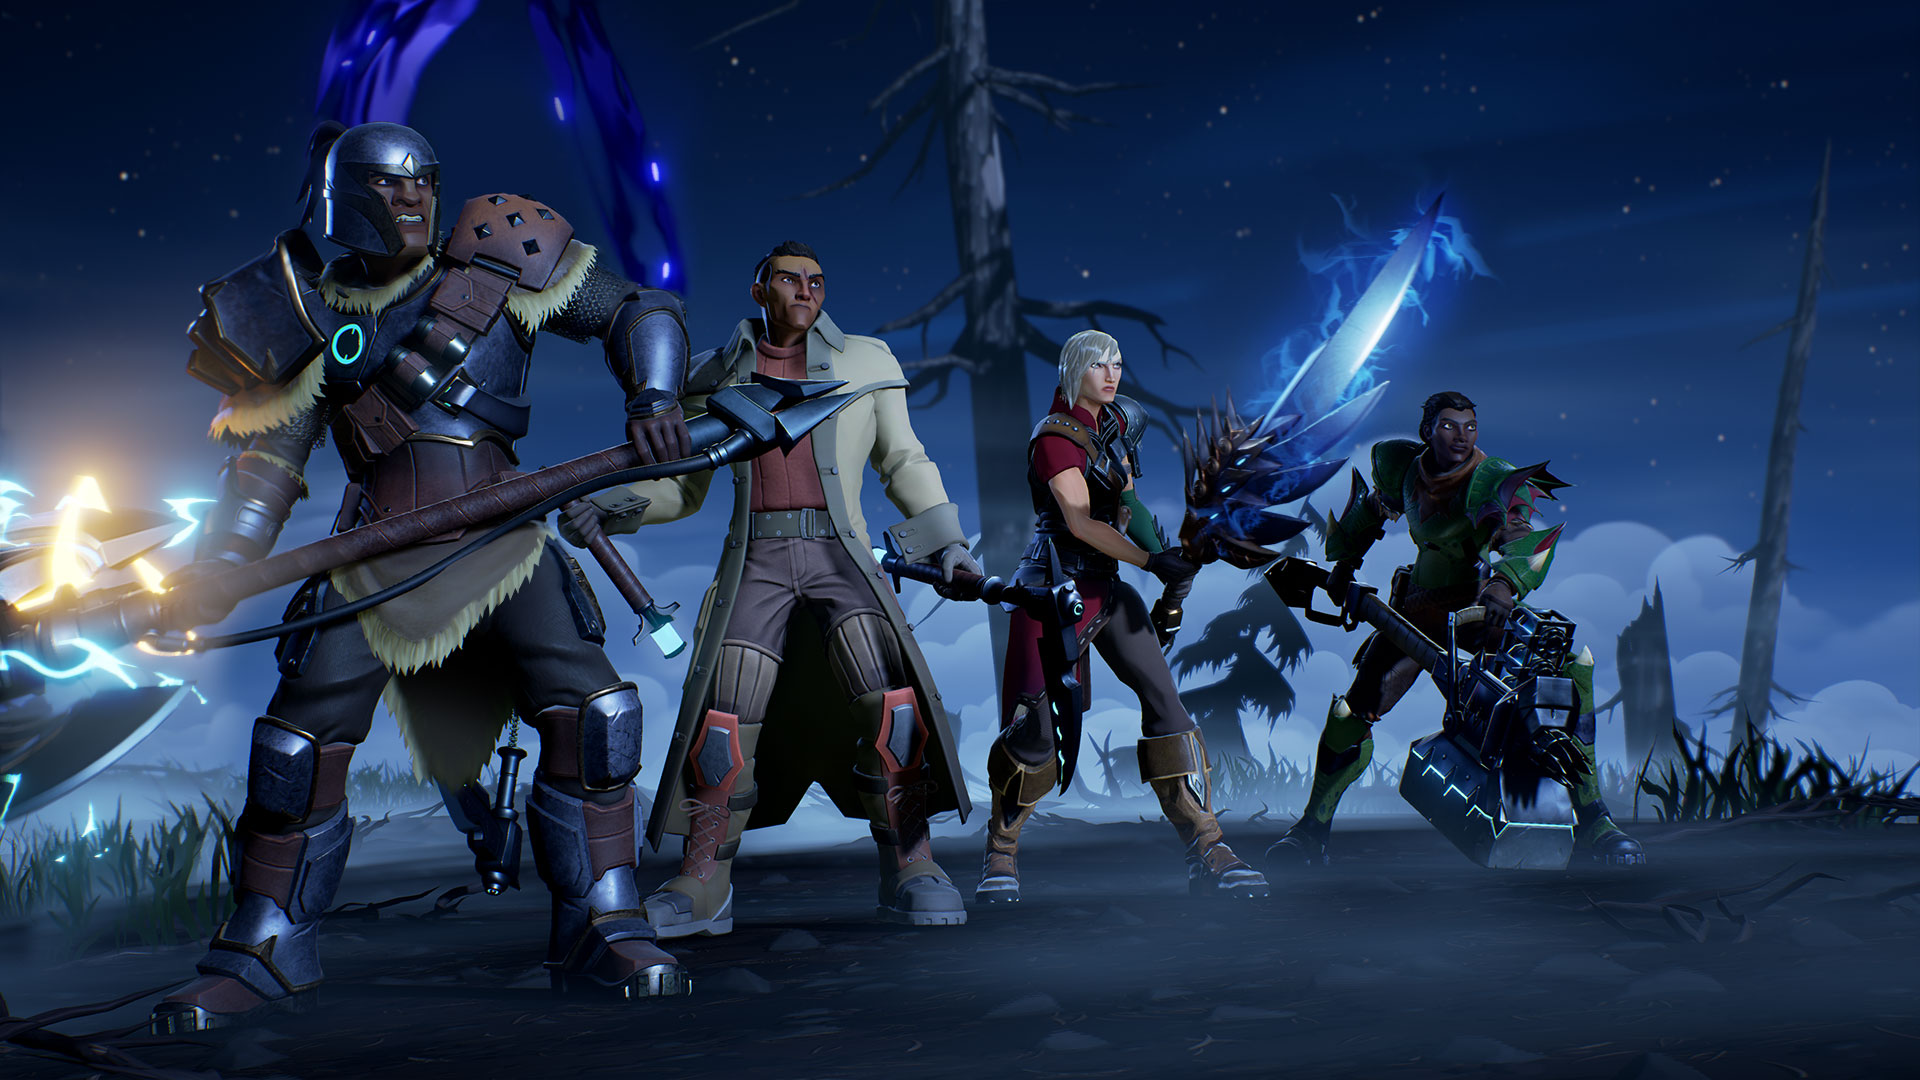 dauntless-screenshot-slayers.jpg